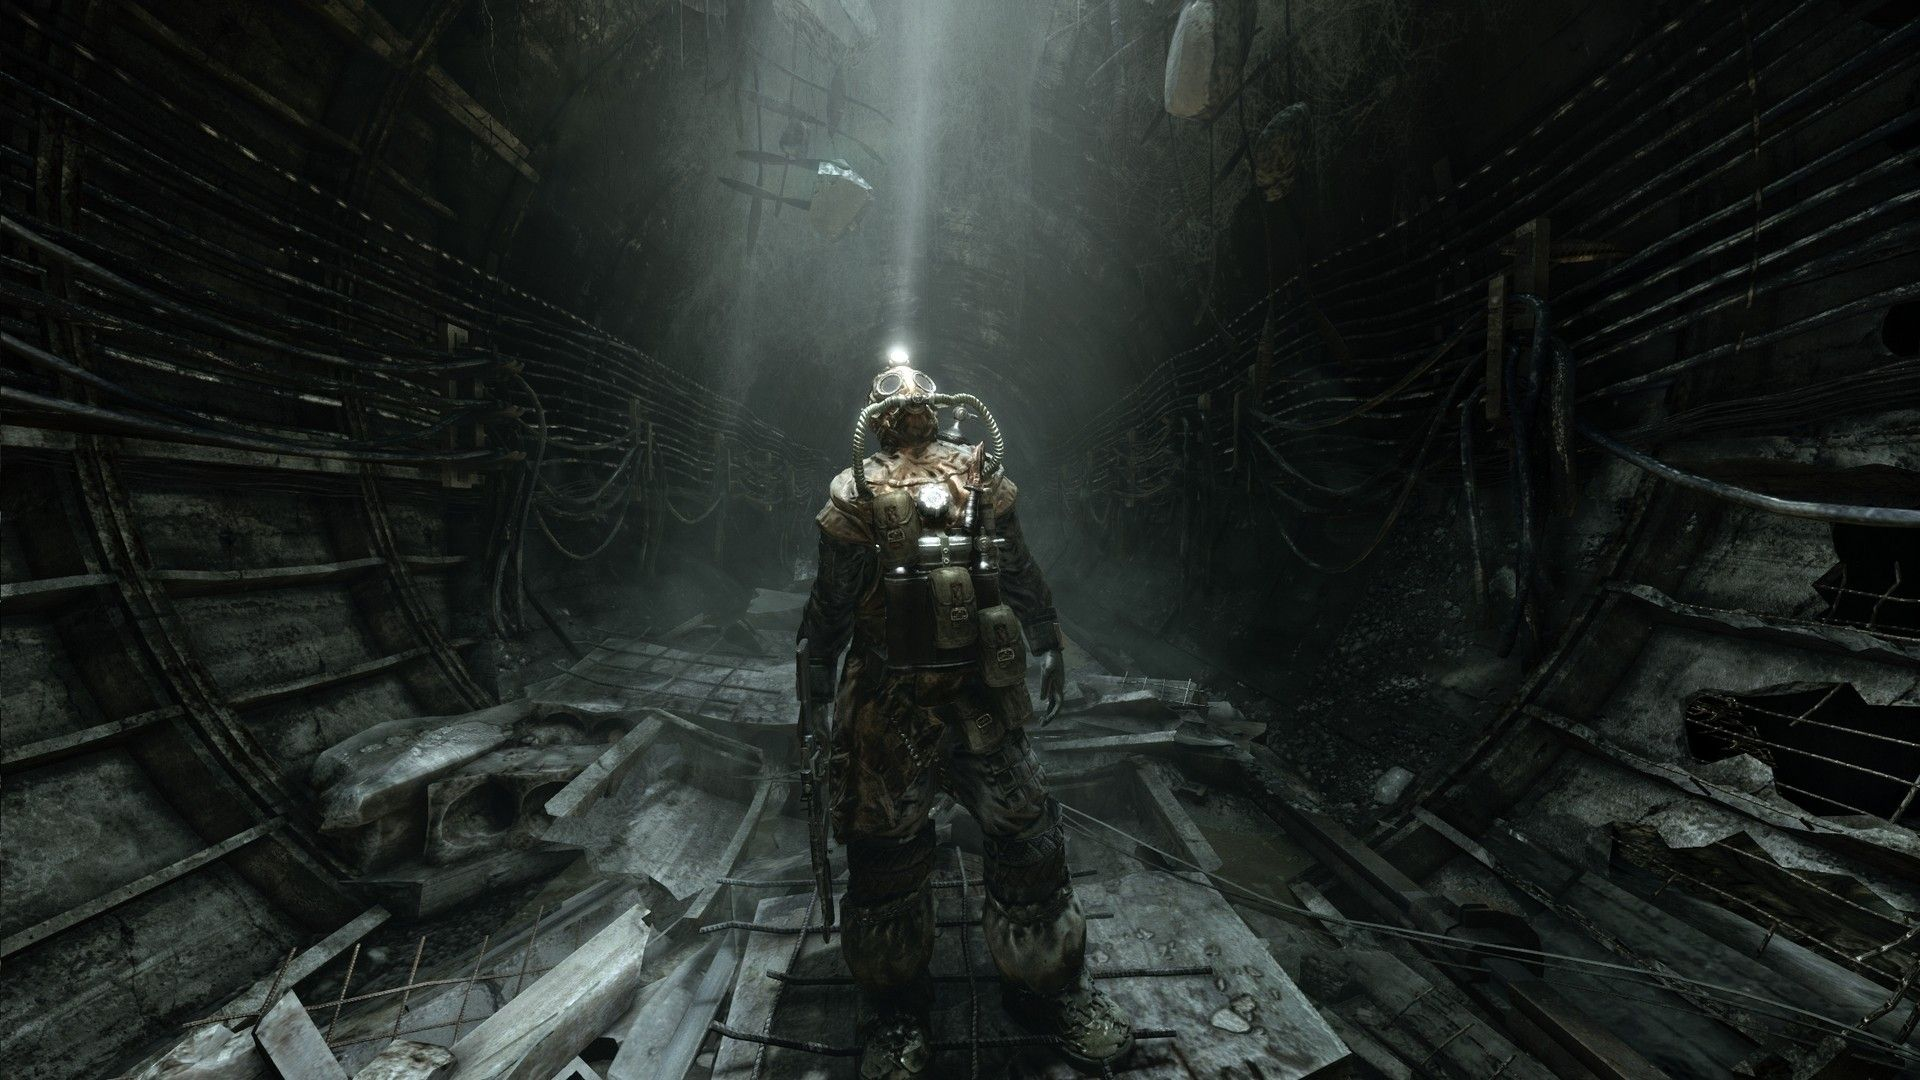 1920x1080 Metro 2033, HD Games, 4k Wallpapers, Images, Backgrounds, Photos and ...